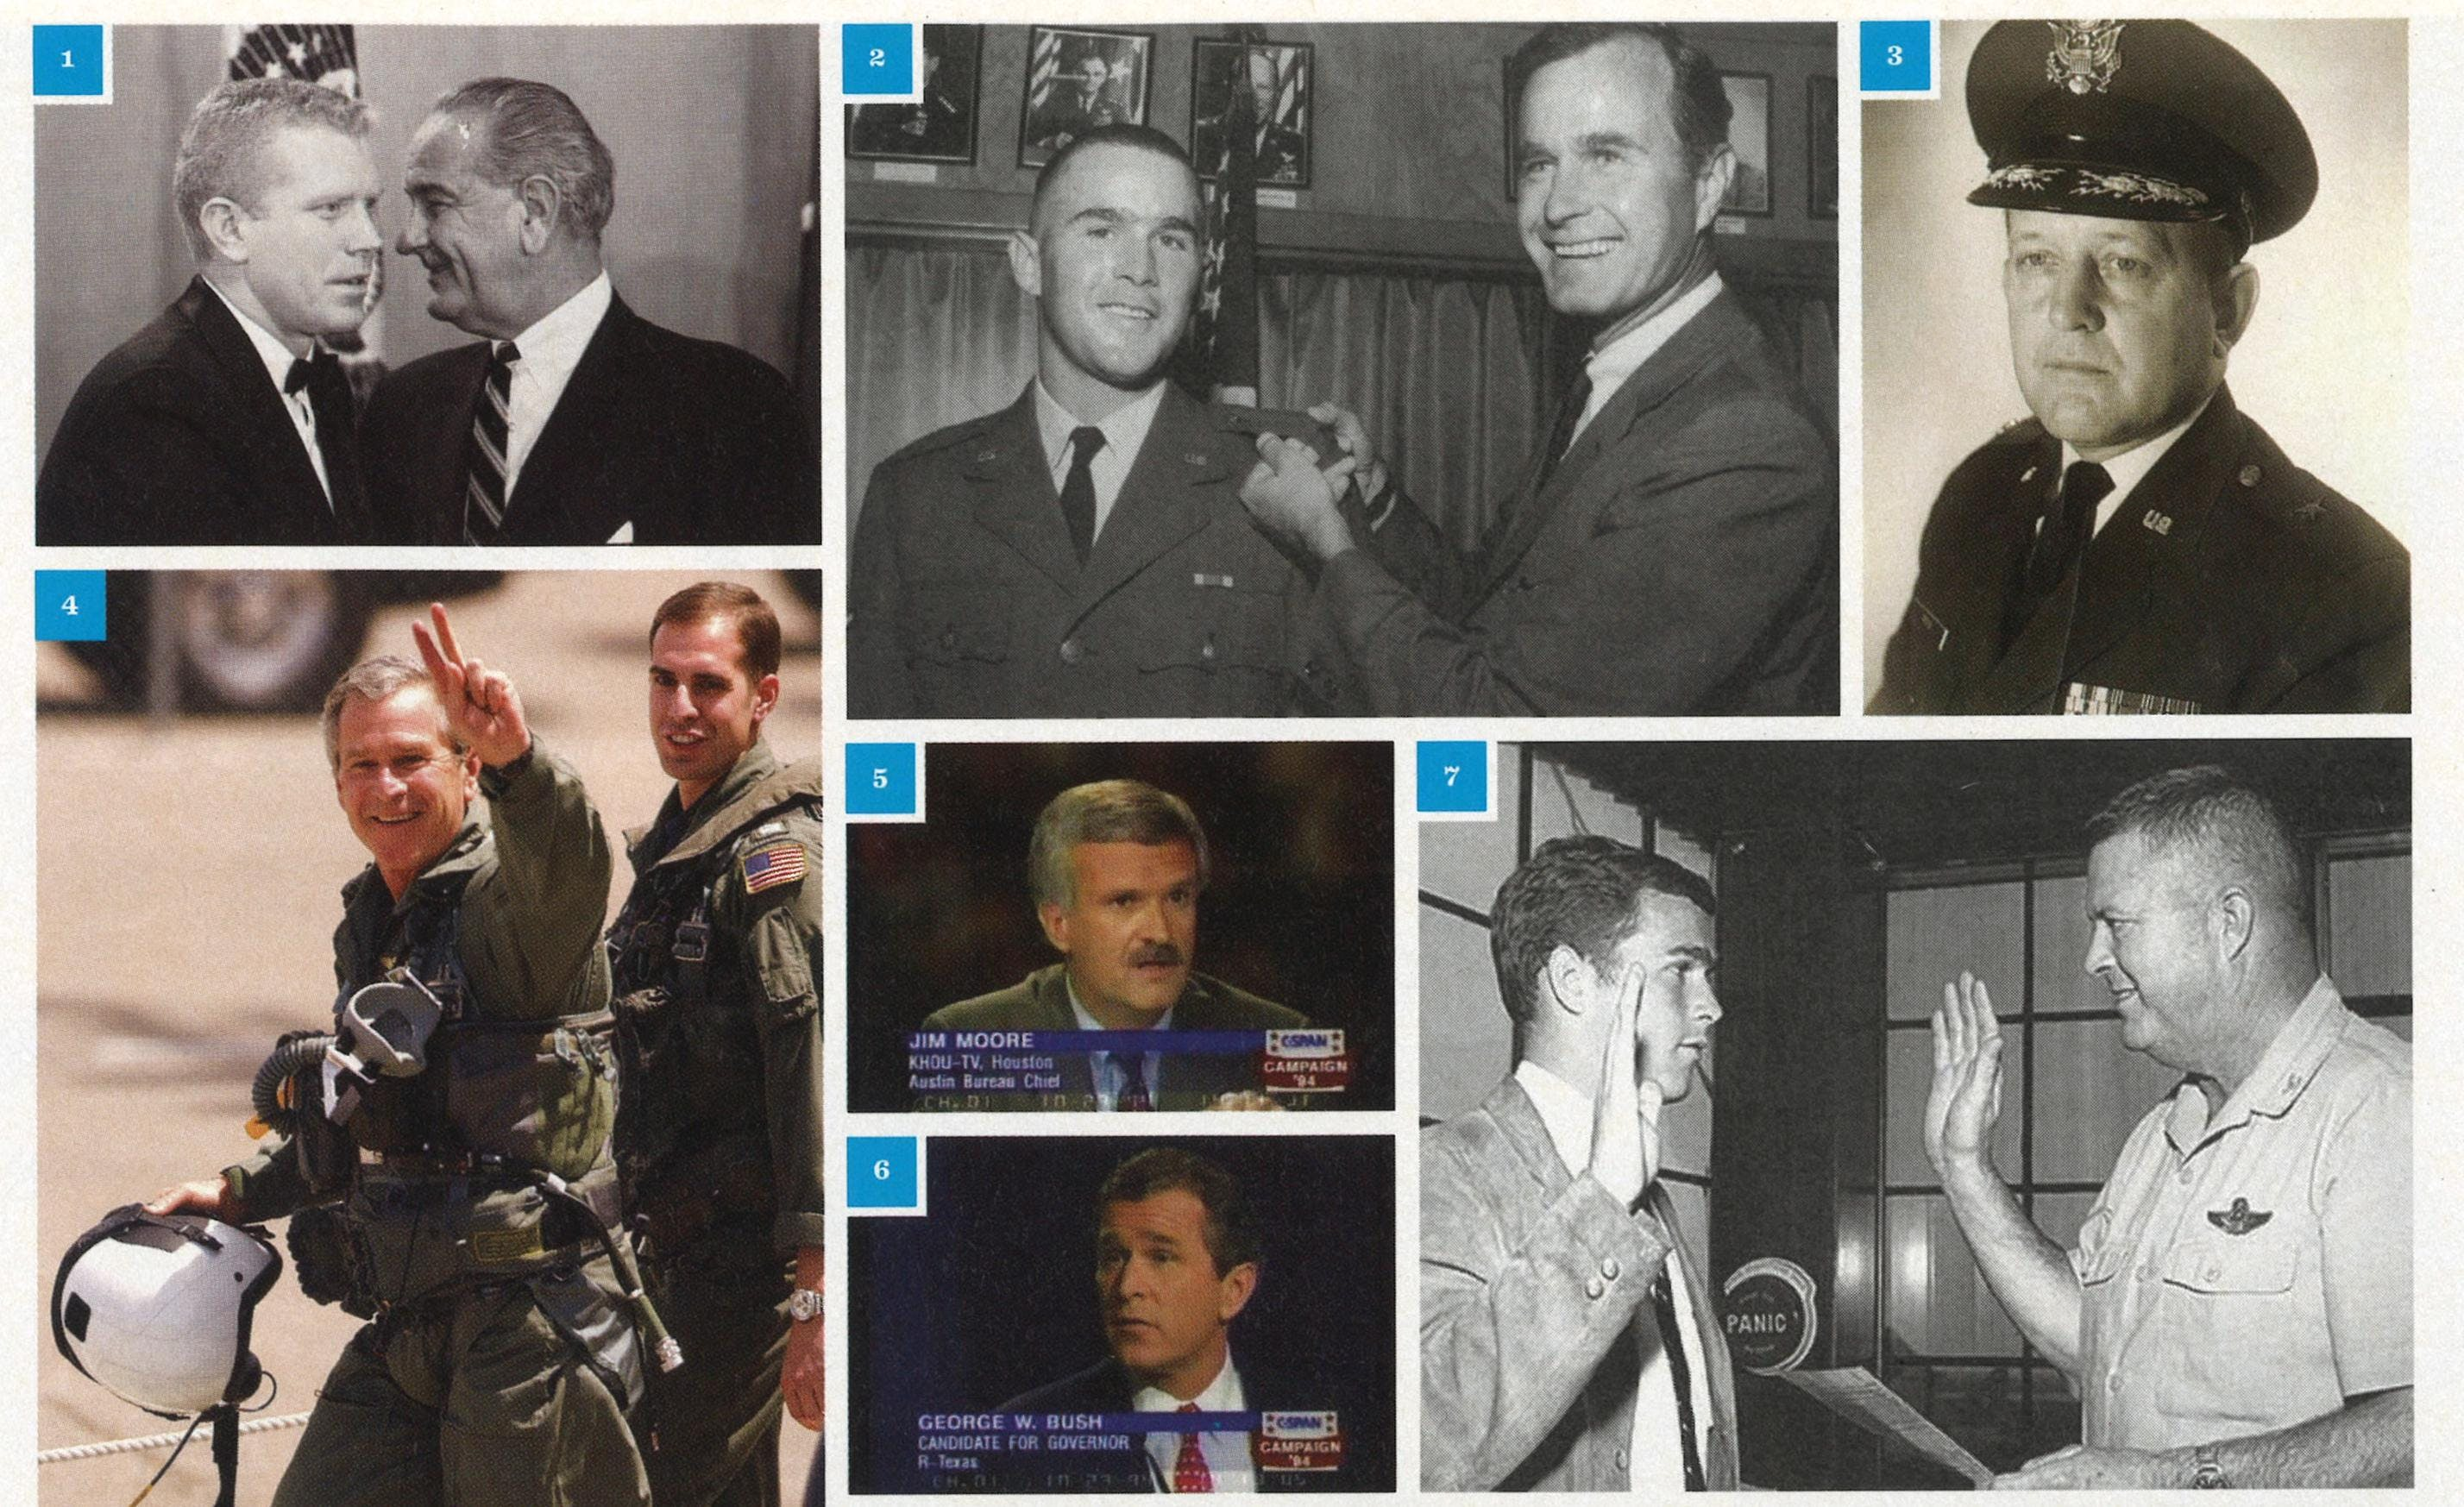 "1. Speaker of the Texas House Ben Barnes and President Lyndon Johnson in 1967. 2. Bush and his father, shortly after he was made an officer in the Texas Air National Guard in 1968. 3. Brigadier General James Rose. 4. Bush in 2003 after his infamous speech on the deck of the USS Abraham Lincoln. 5. & 6. Jim Moore and Bush at the 1994 gubernatorial debate. 7. Bush with Colonel Walter ""Buck"" Staudt in 1968."